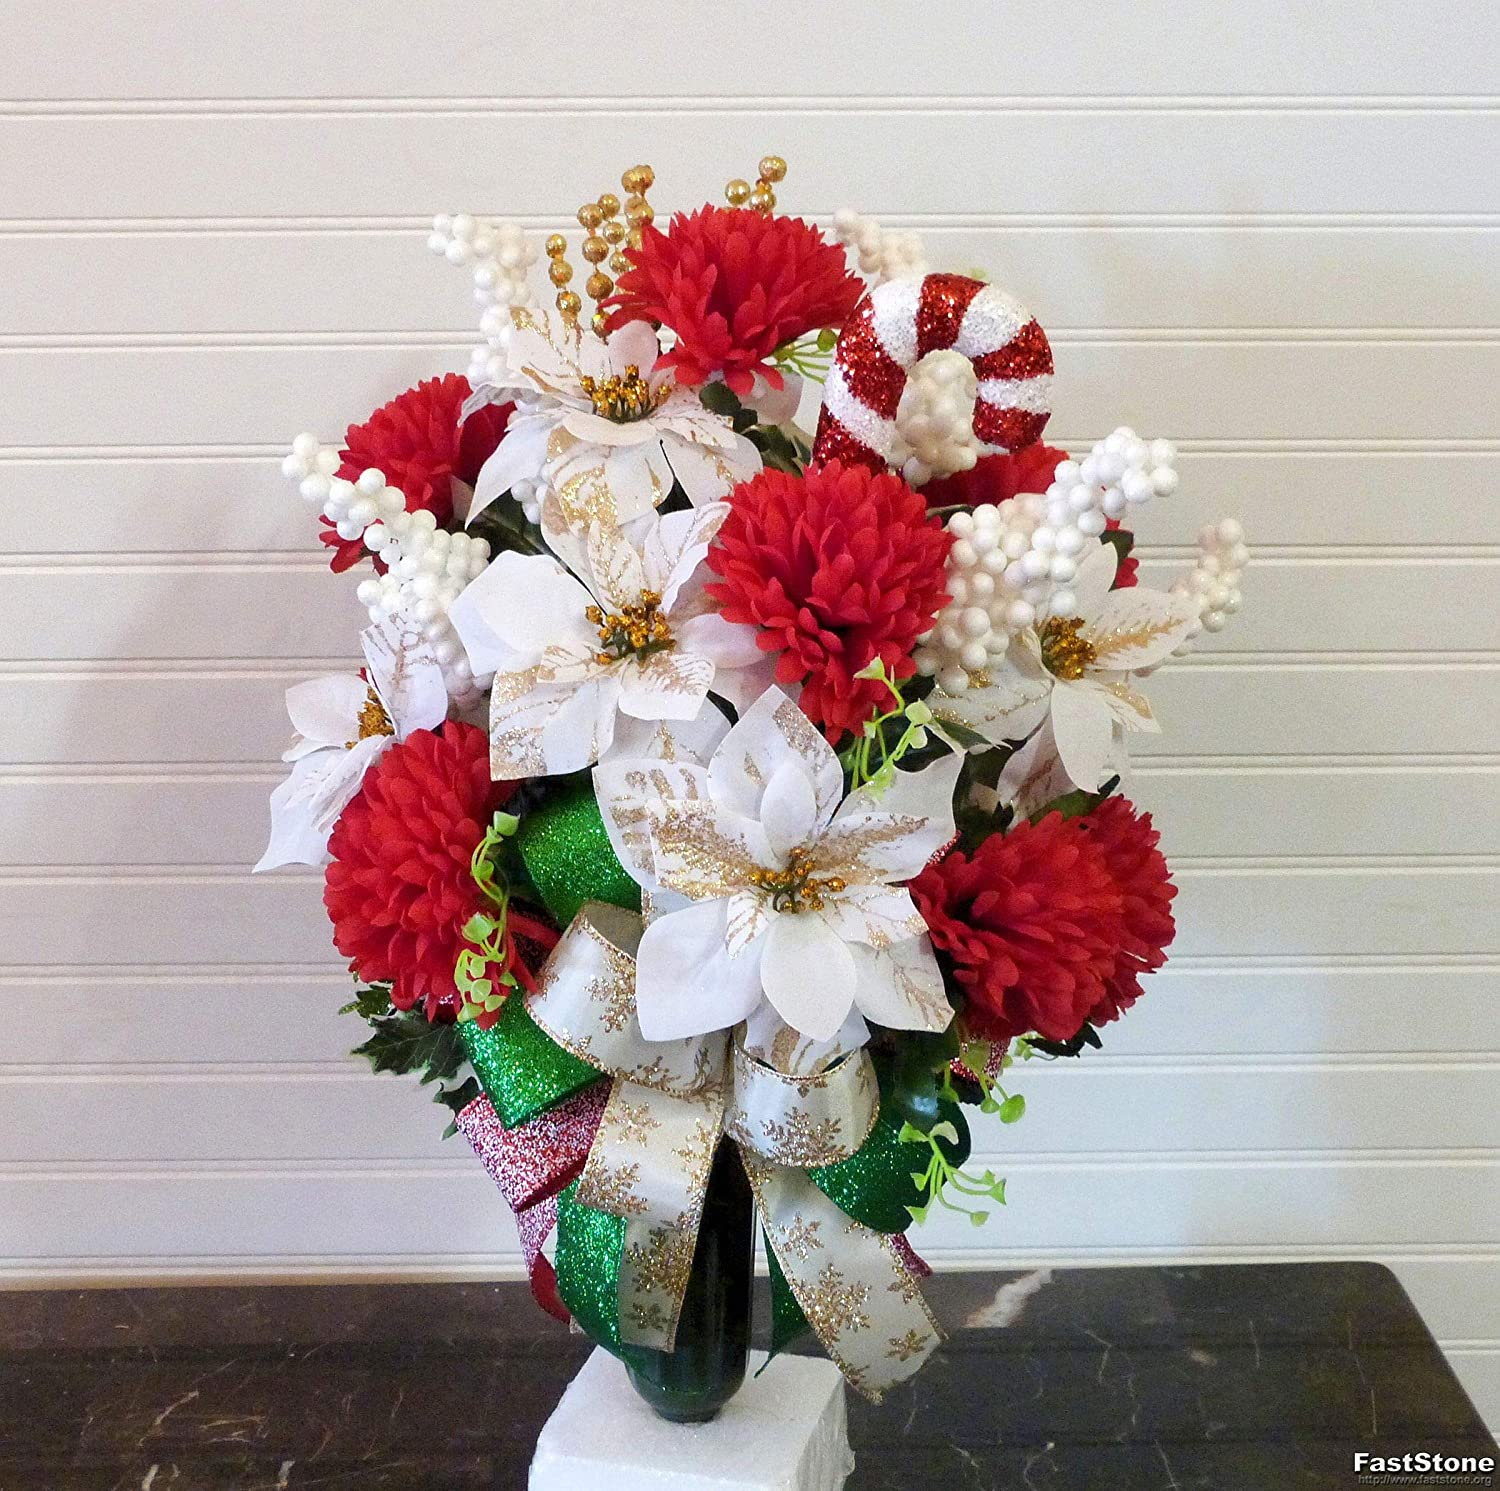 Christmas Cemetery Vase Arrangement Cemetery Flowers With Poinsettias And Candy Cane Christmas Grave Flowers Artificial Flora